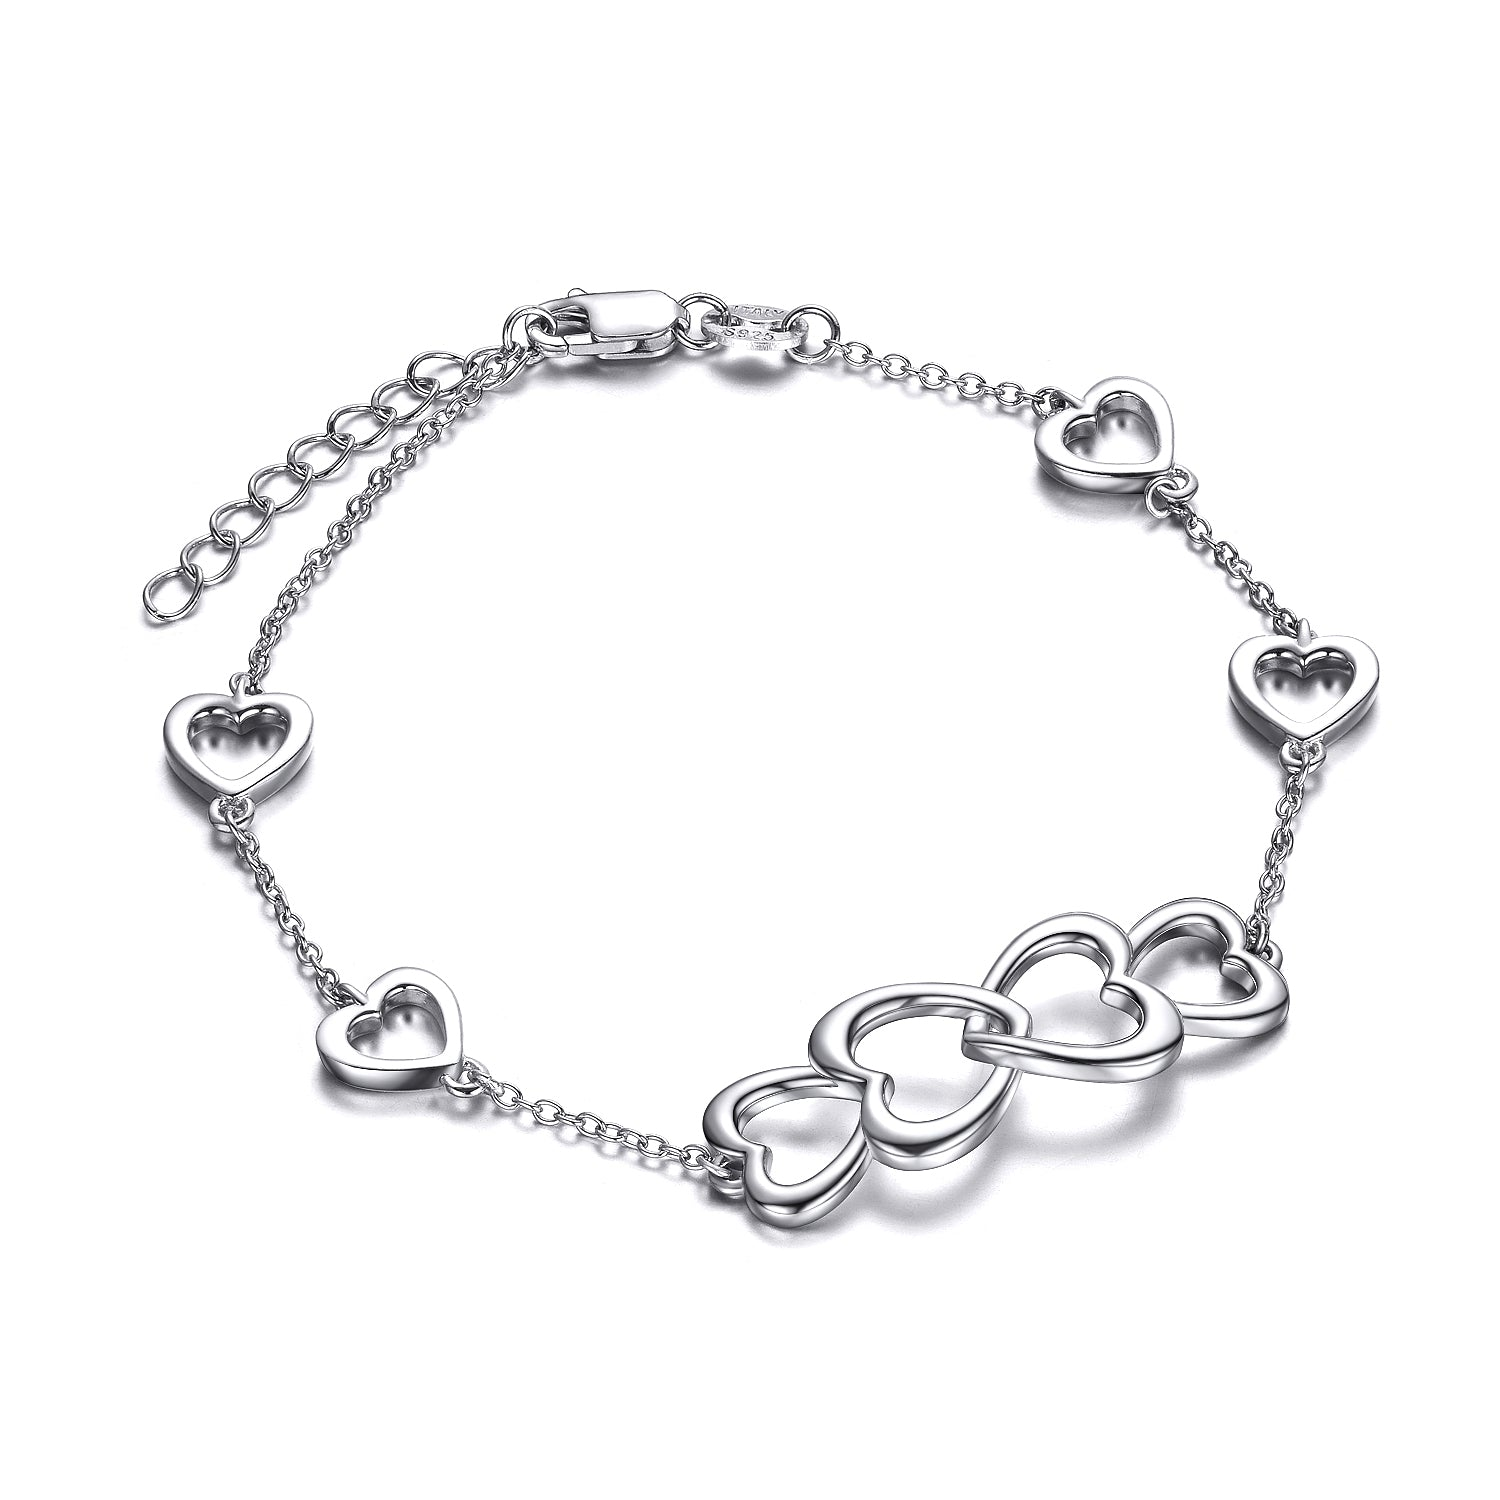 Loving Heart Adjustable Bracelet Cable Chain Heart Women Bracelet Fashionable